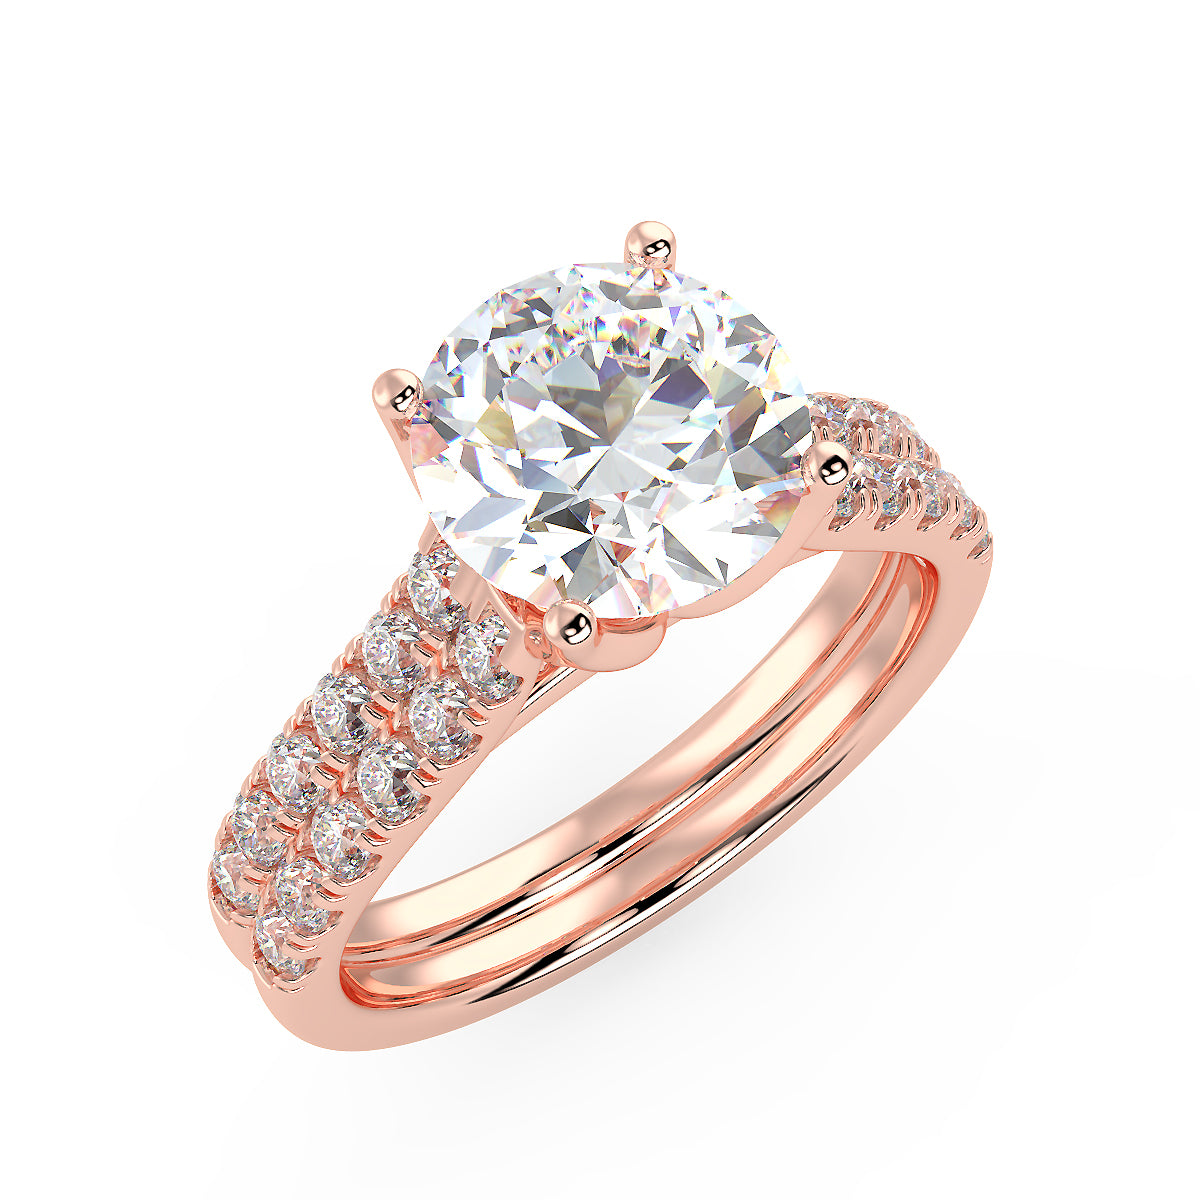 Bright Altair Engagement Ring in Rose Gold